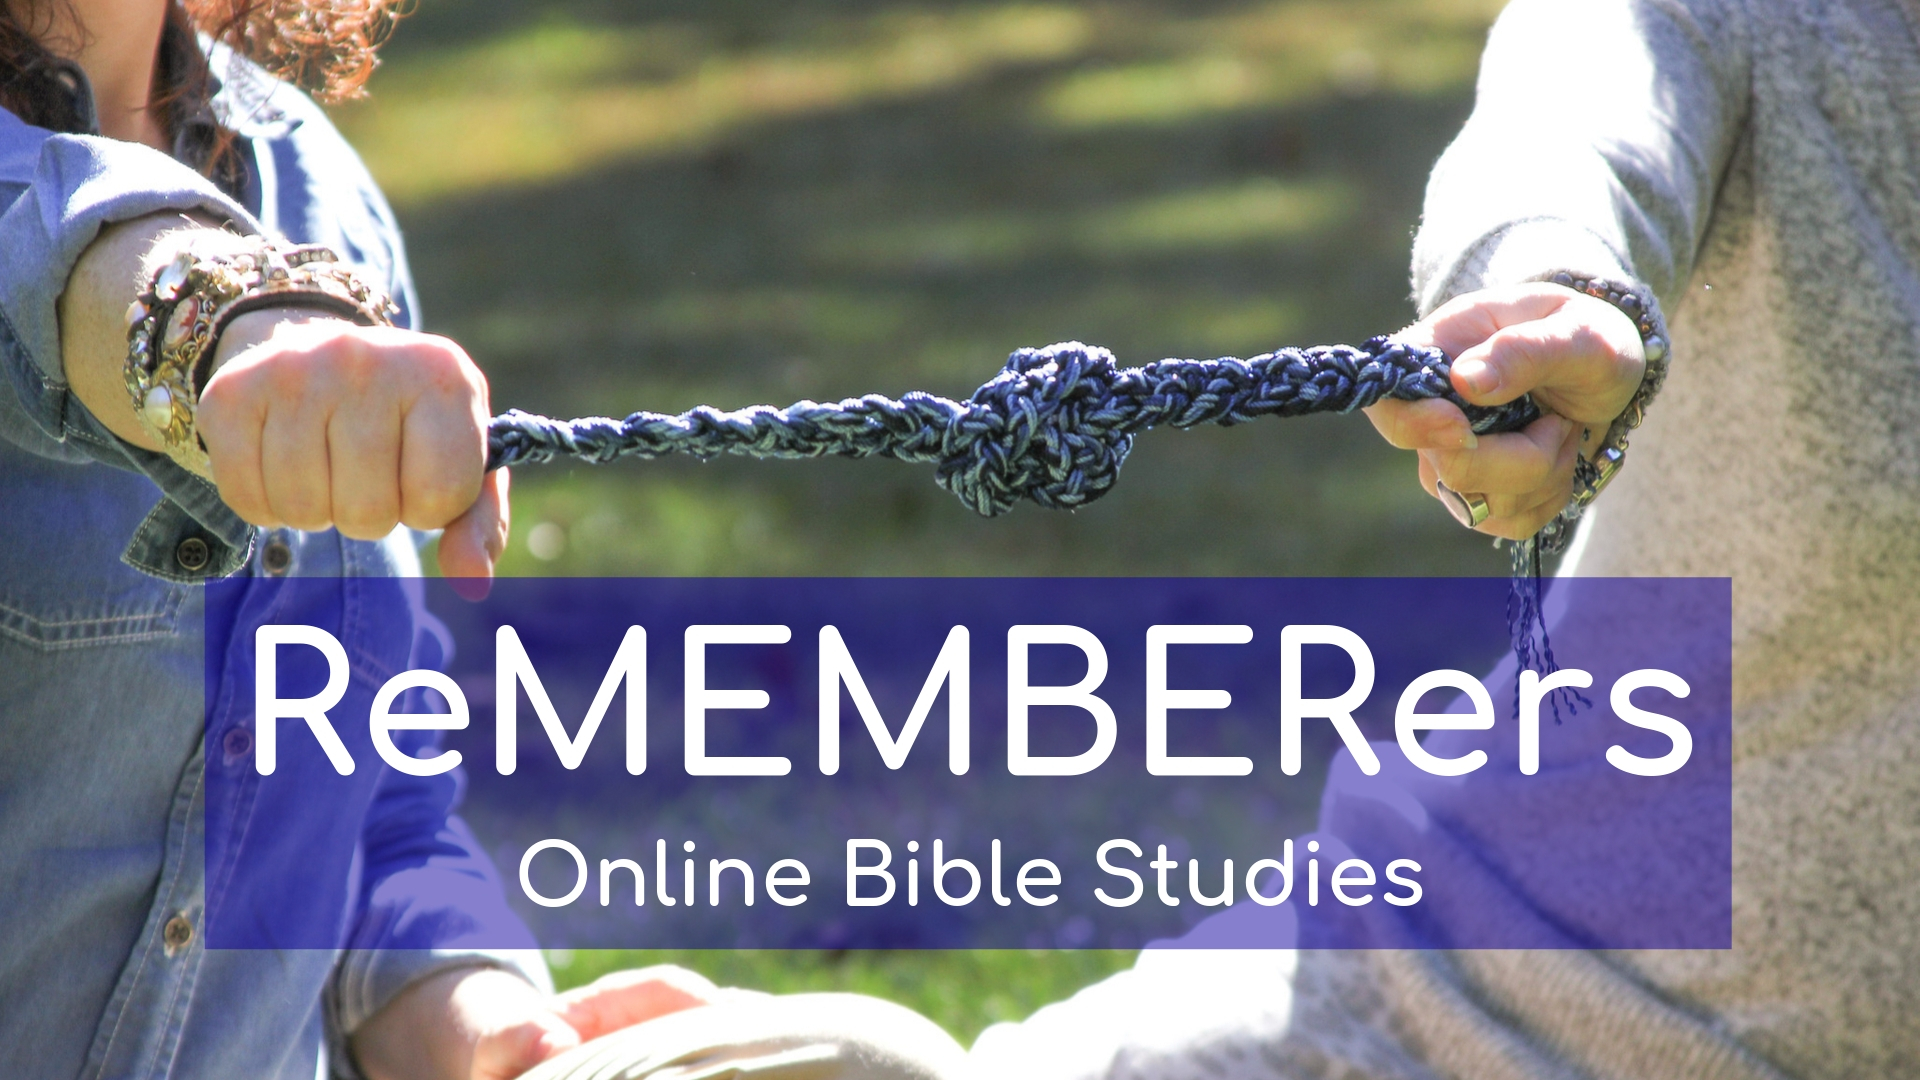 ReMEMBERers online Bible studies for homeschoolers